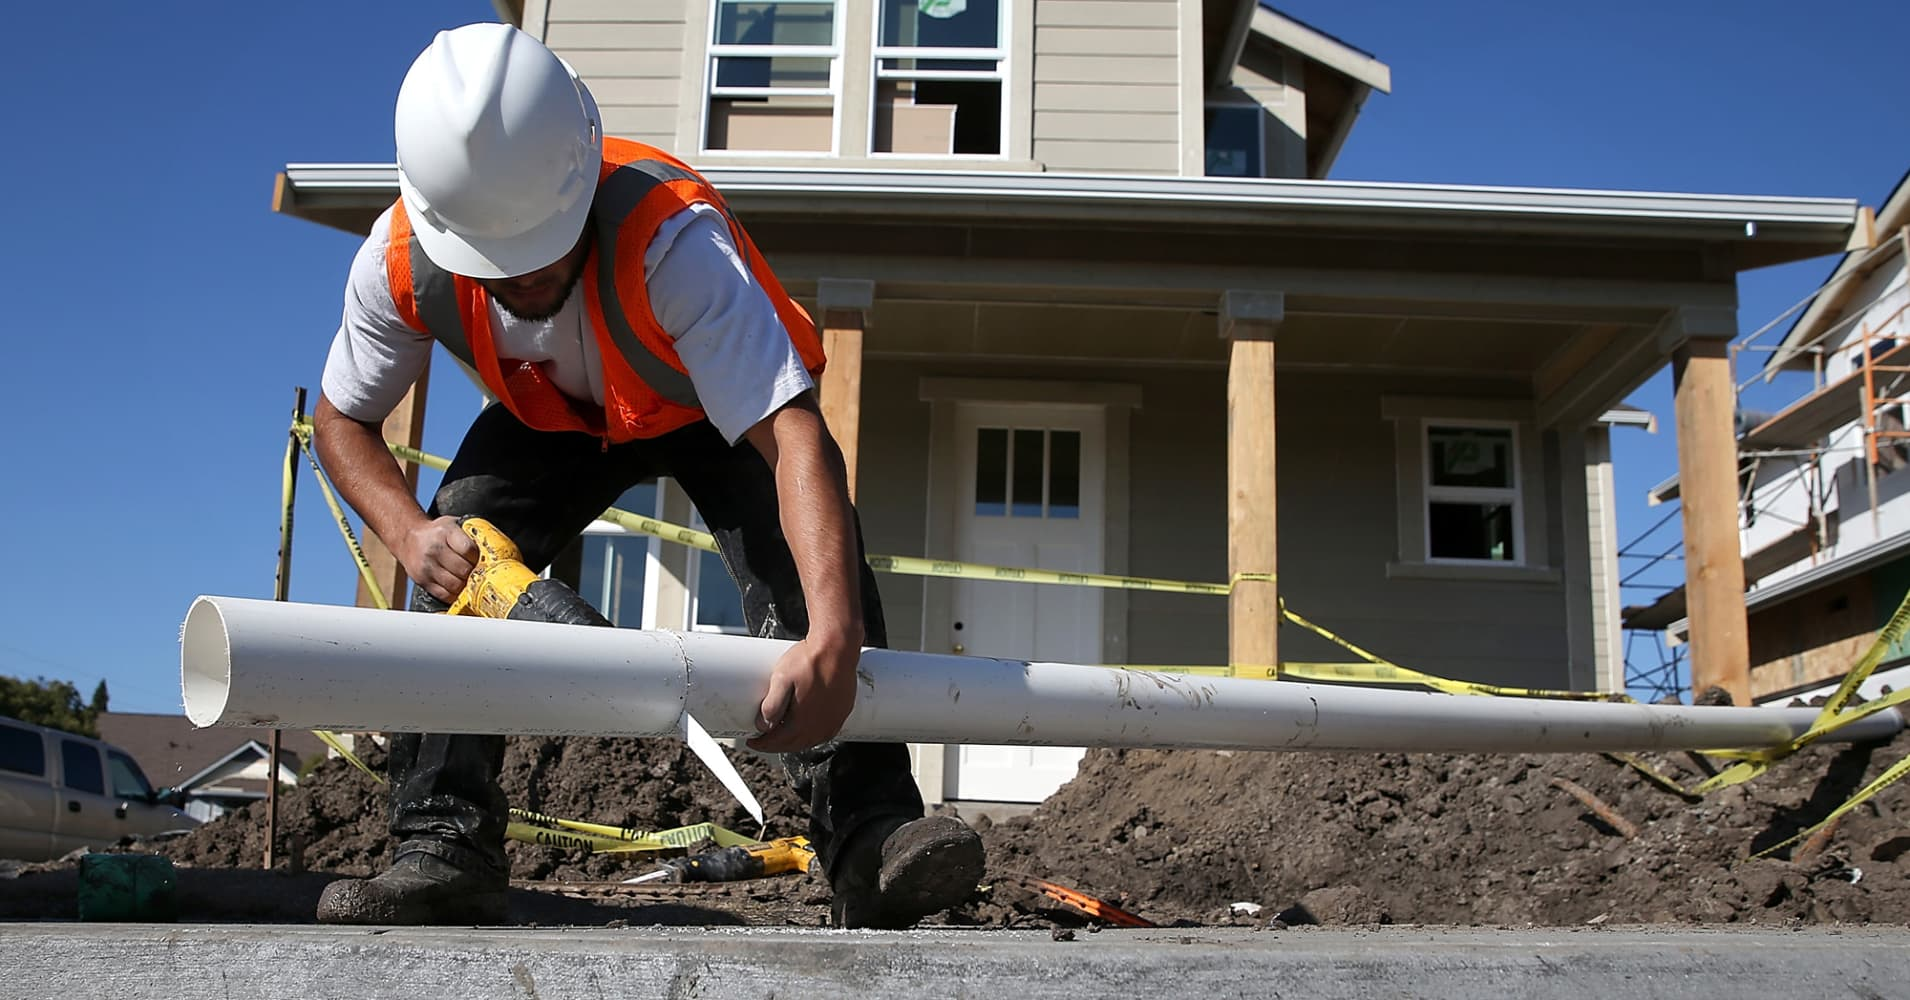 US housing starts total 1.35 million in May, vs 1.31 million starts expected